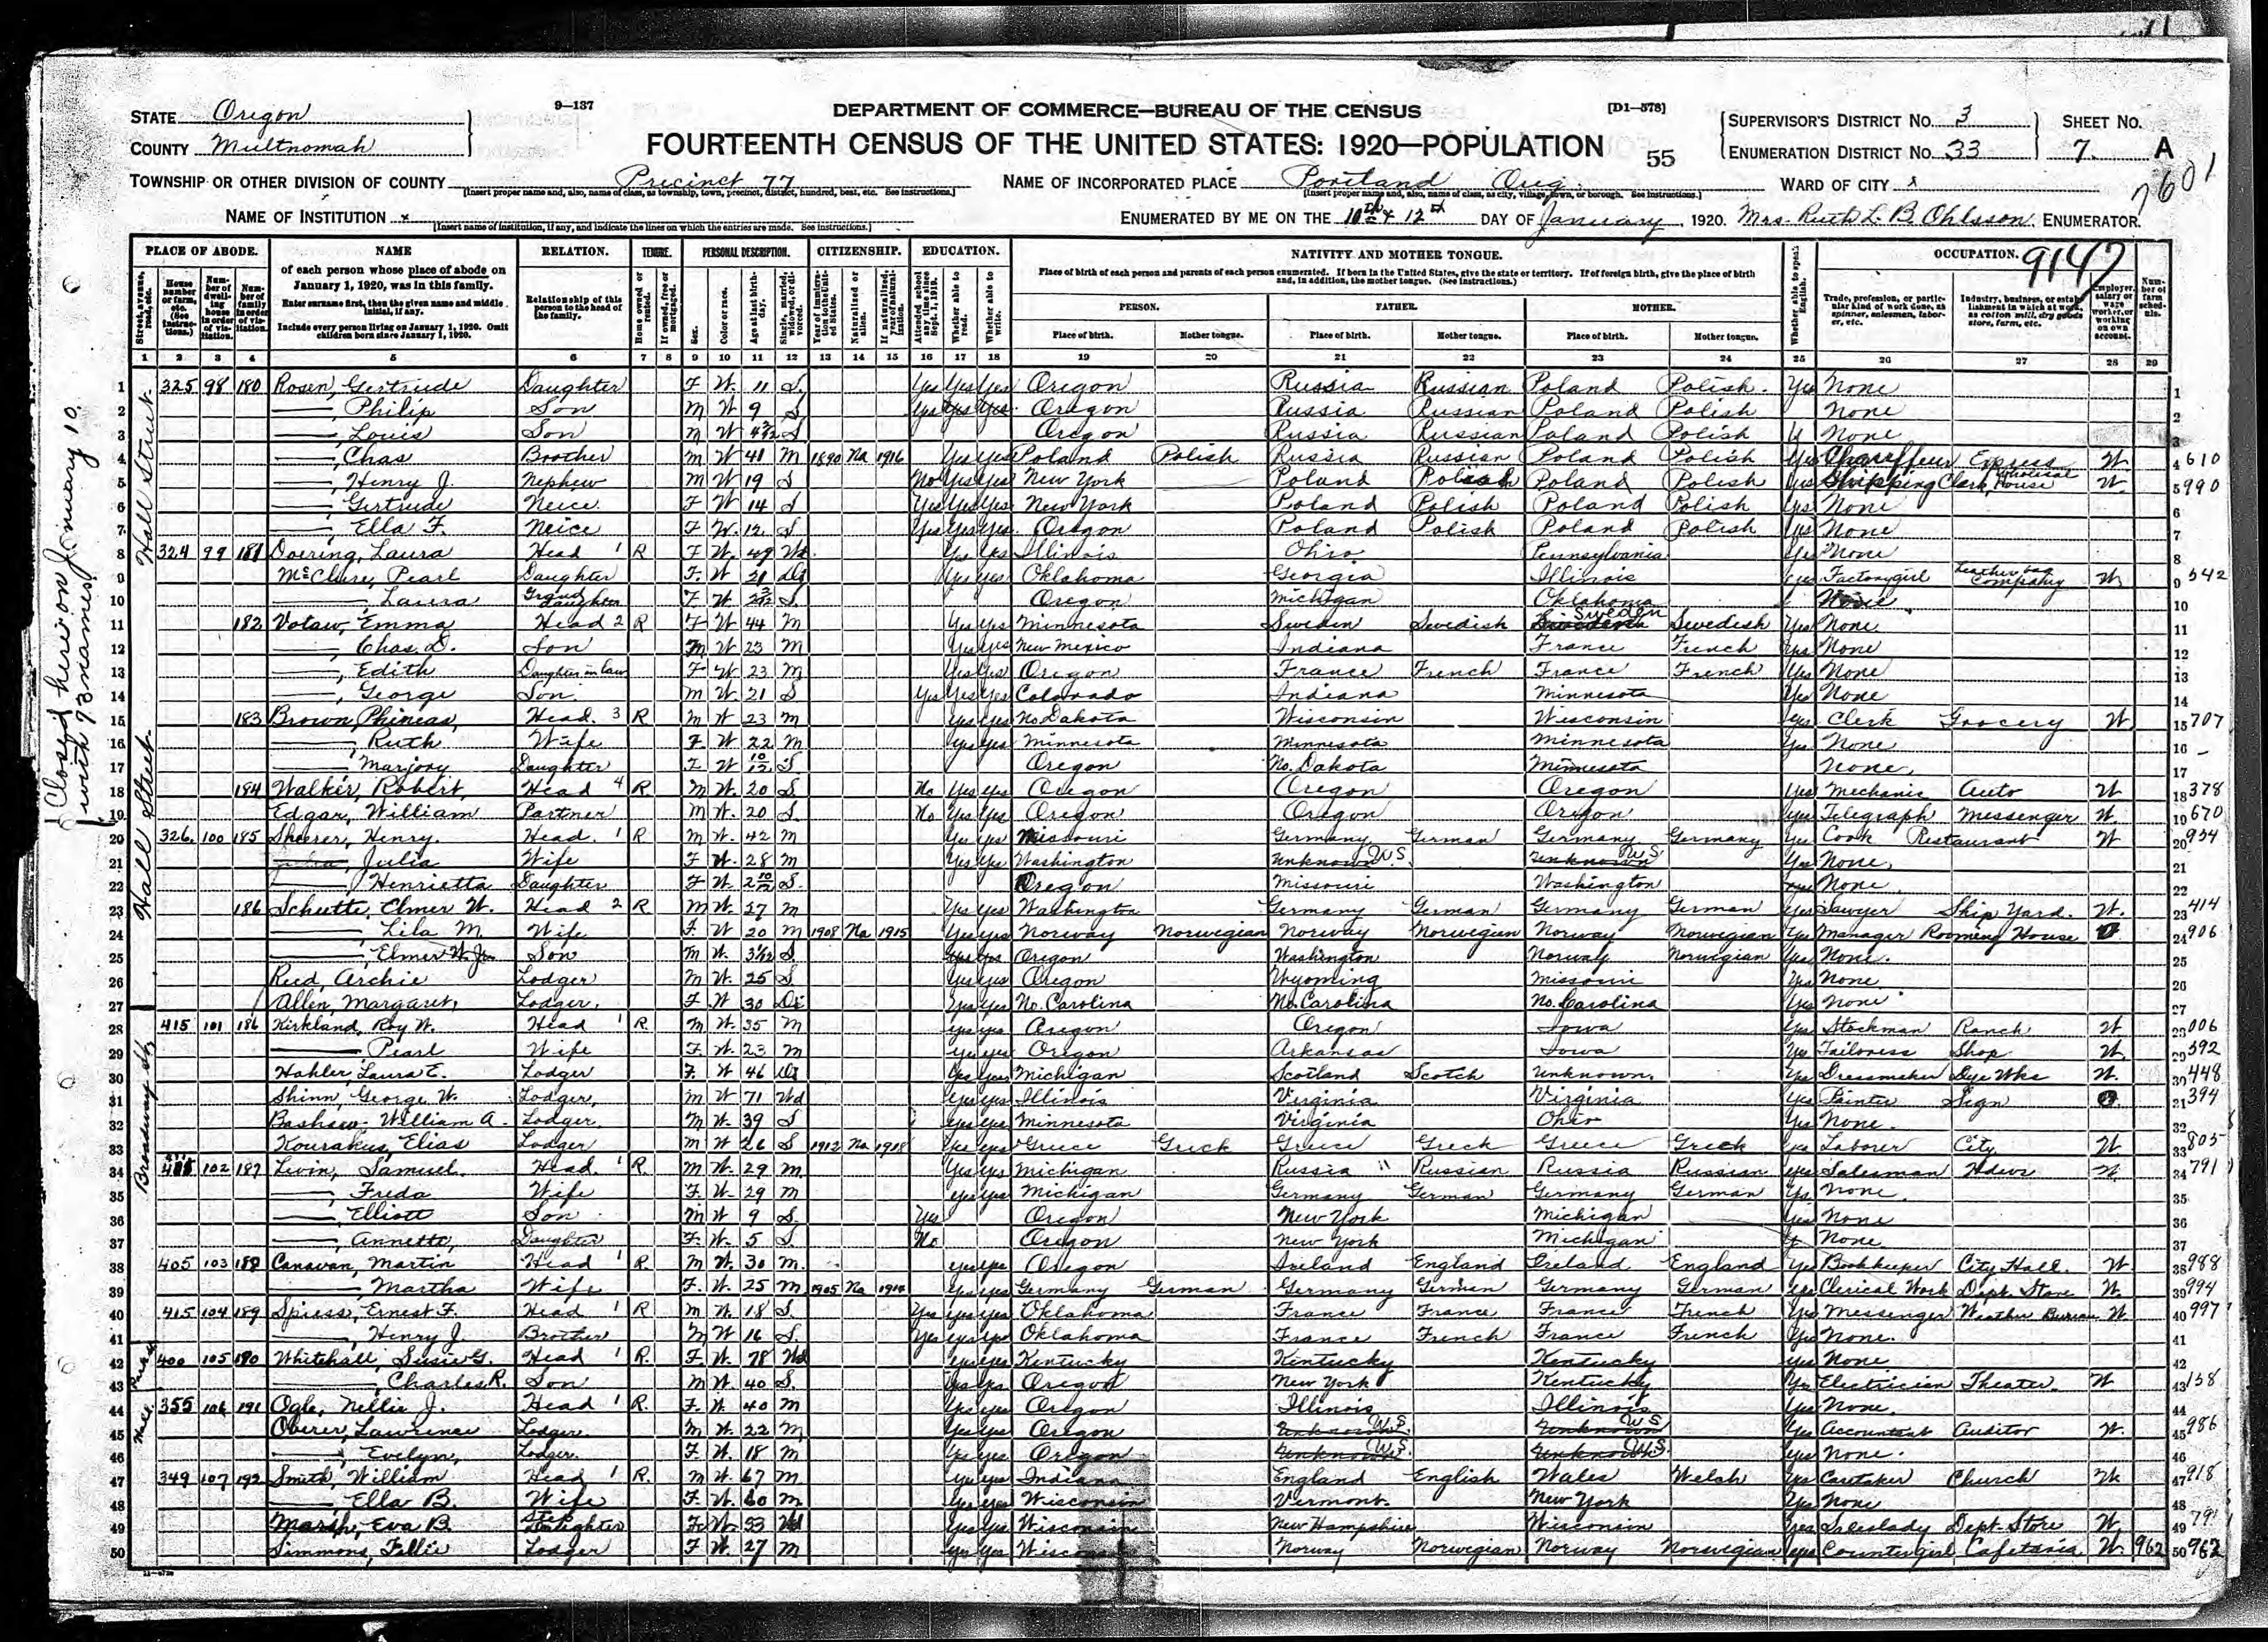 Descendents of henry george grabenhorst evelyn iowa grabenhorst lawrence oberer age 22 born in oregon lodger works as accountant for auditor evelyn oberer age 18 born in oregon lodger portland multnomah oregon roll aiddatafo Choice Image